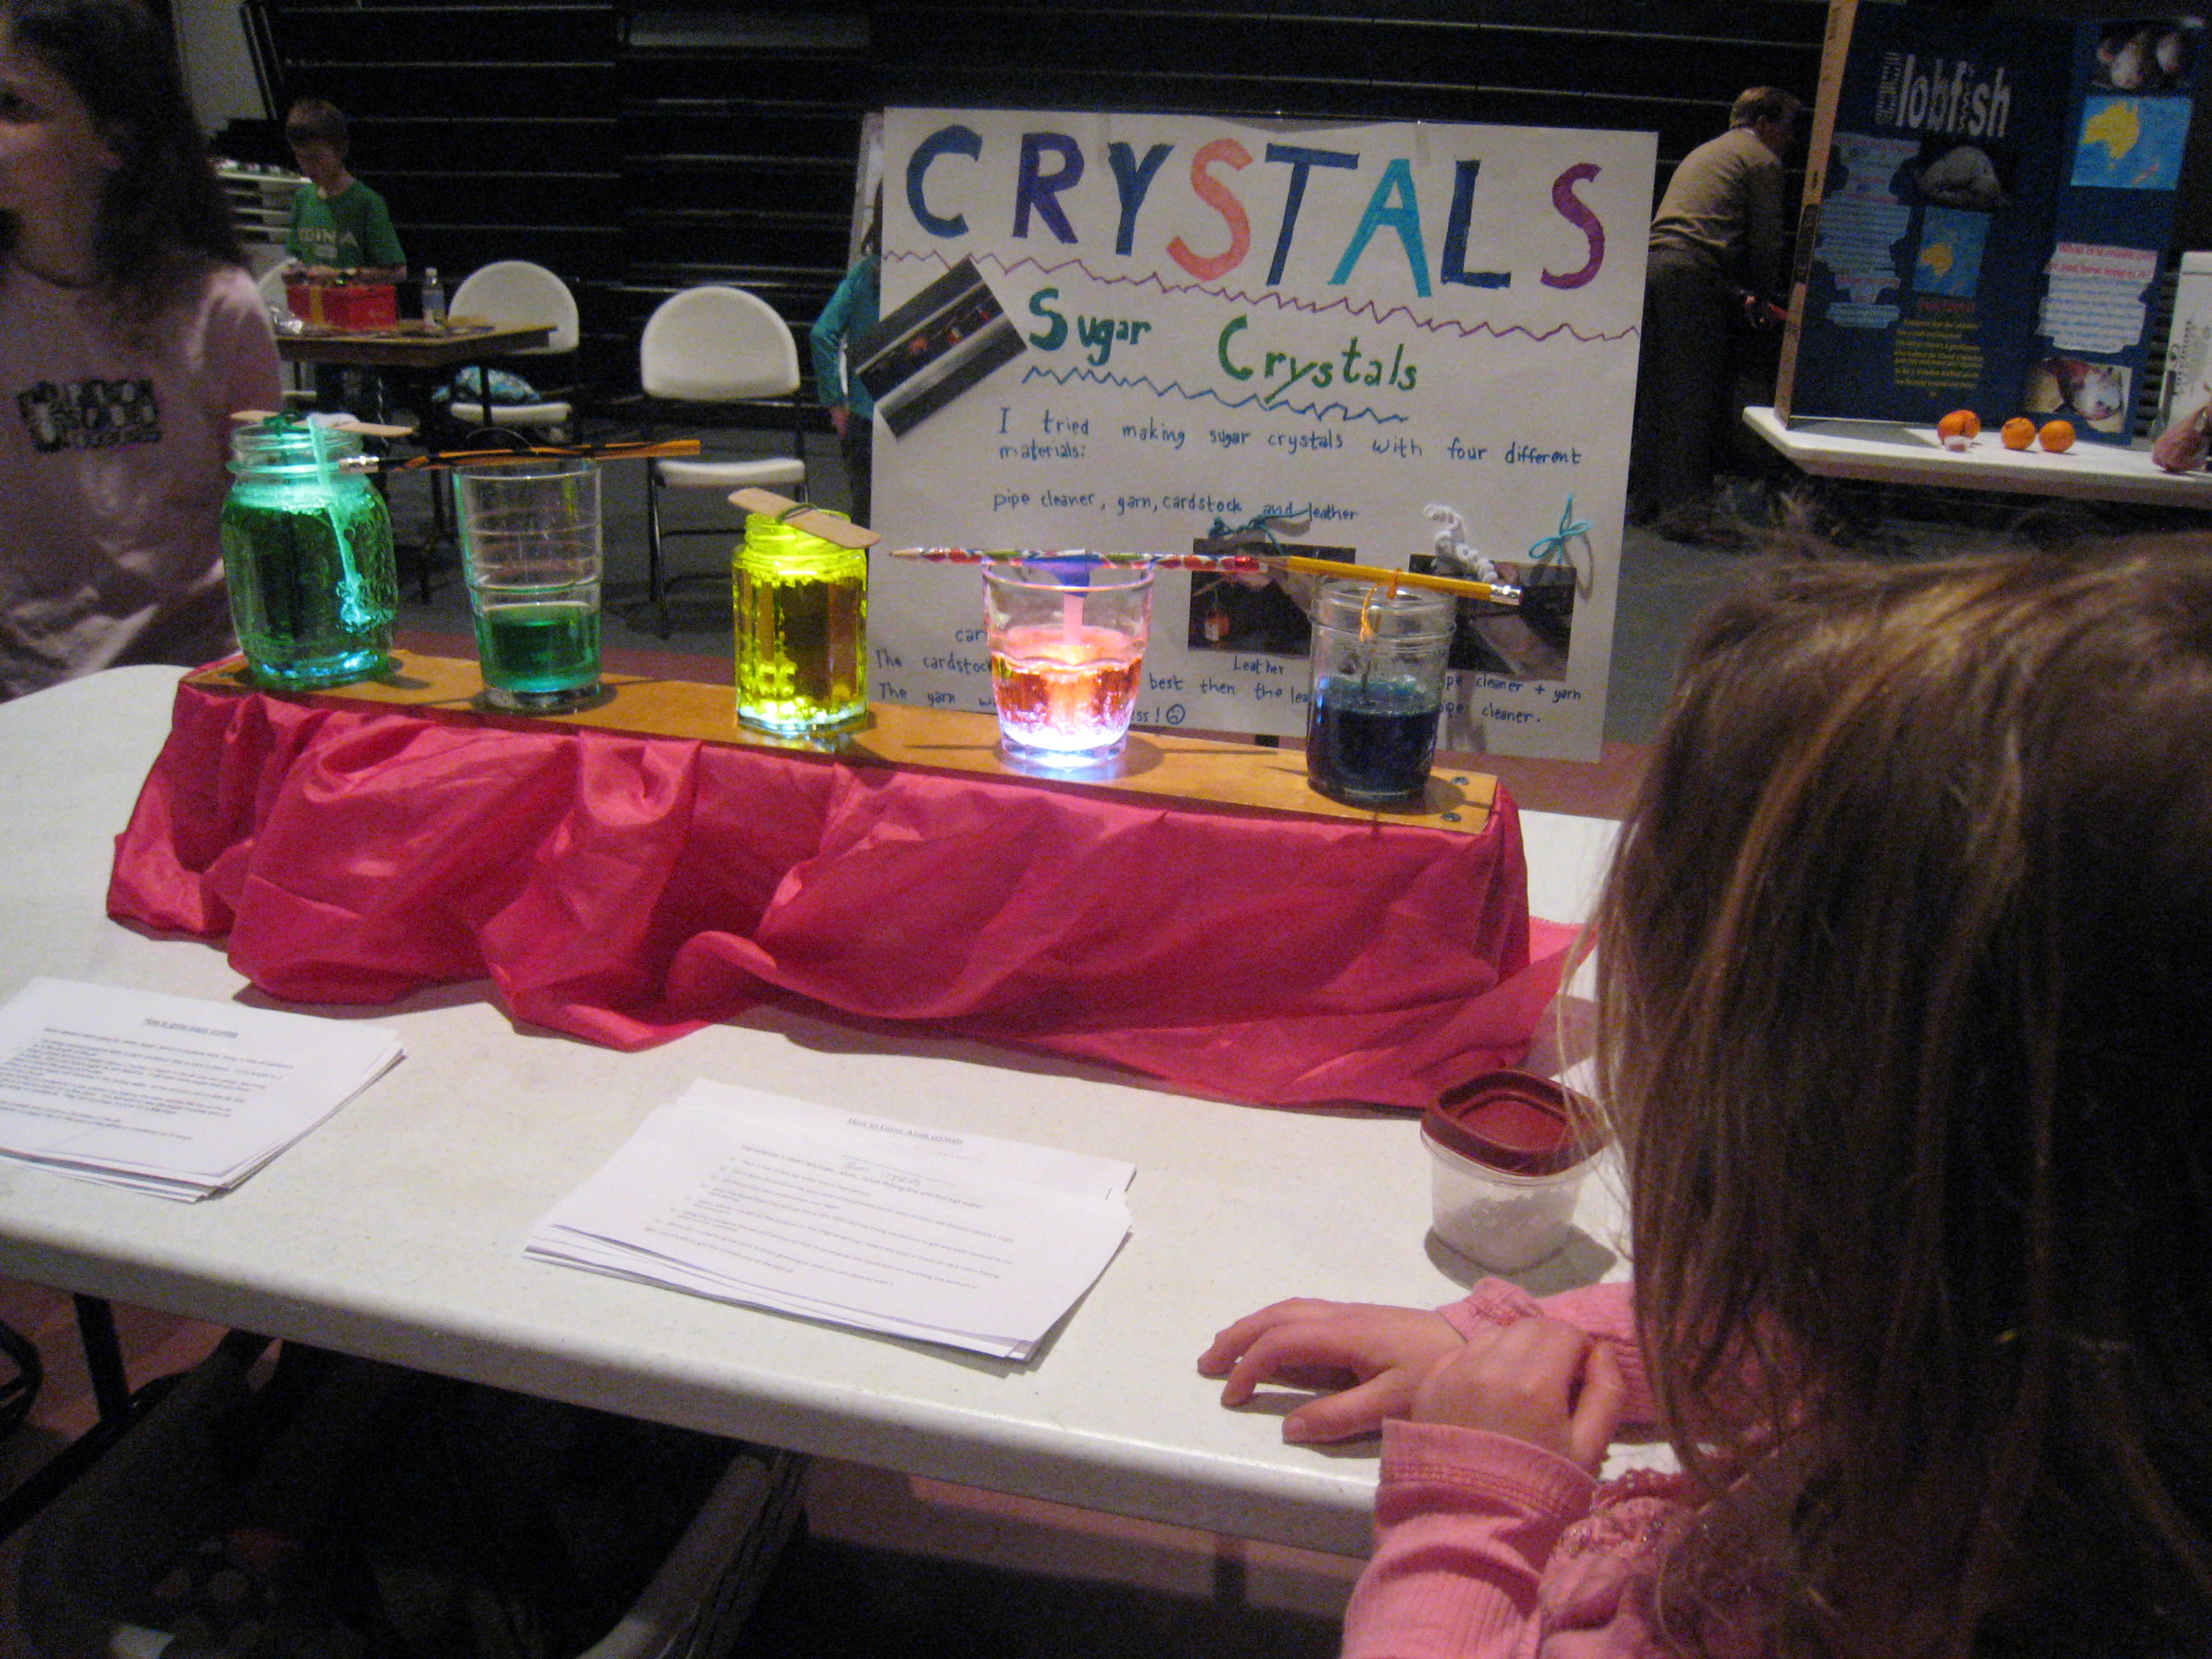 Uncategorized cool science projects for kids science fair project ideas for kids - Sugar